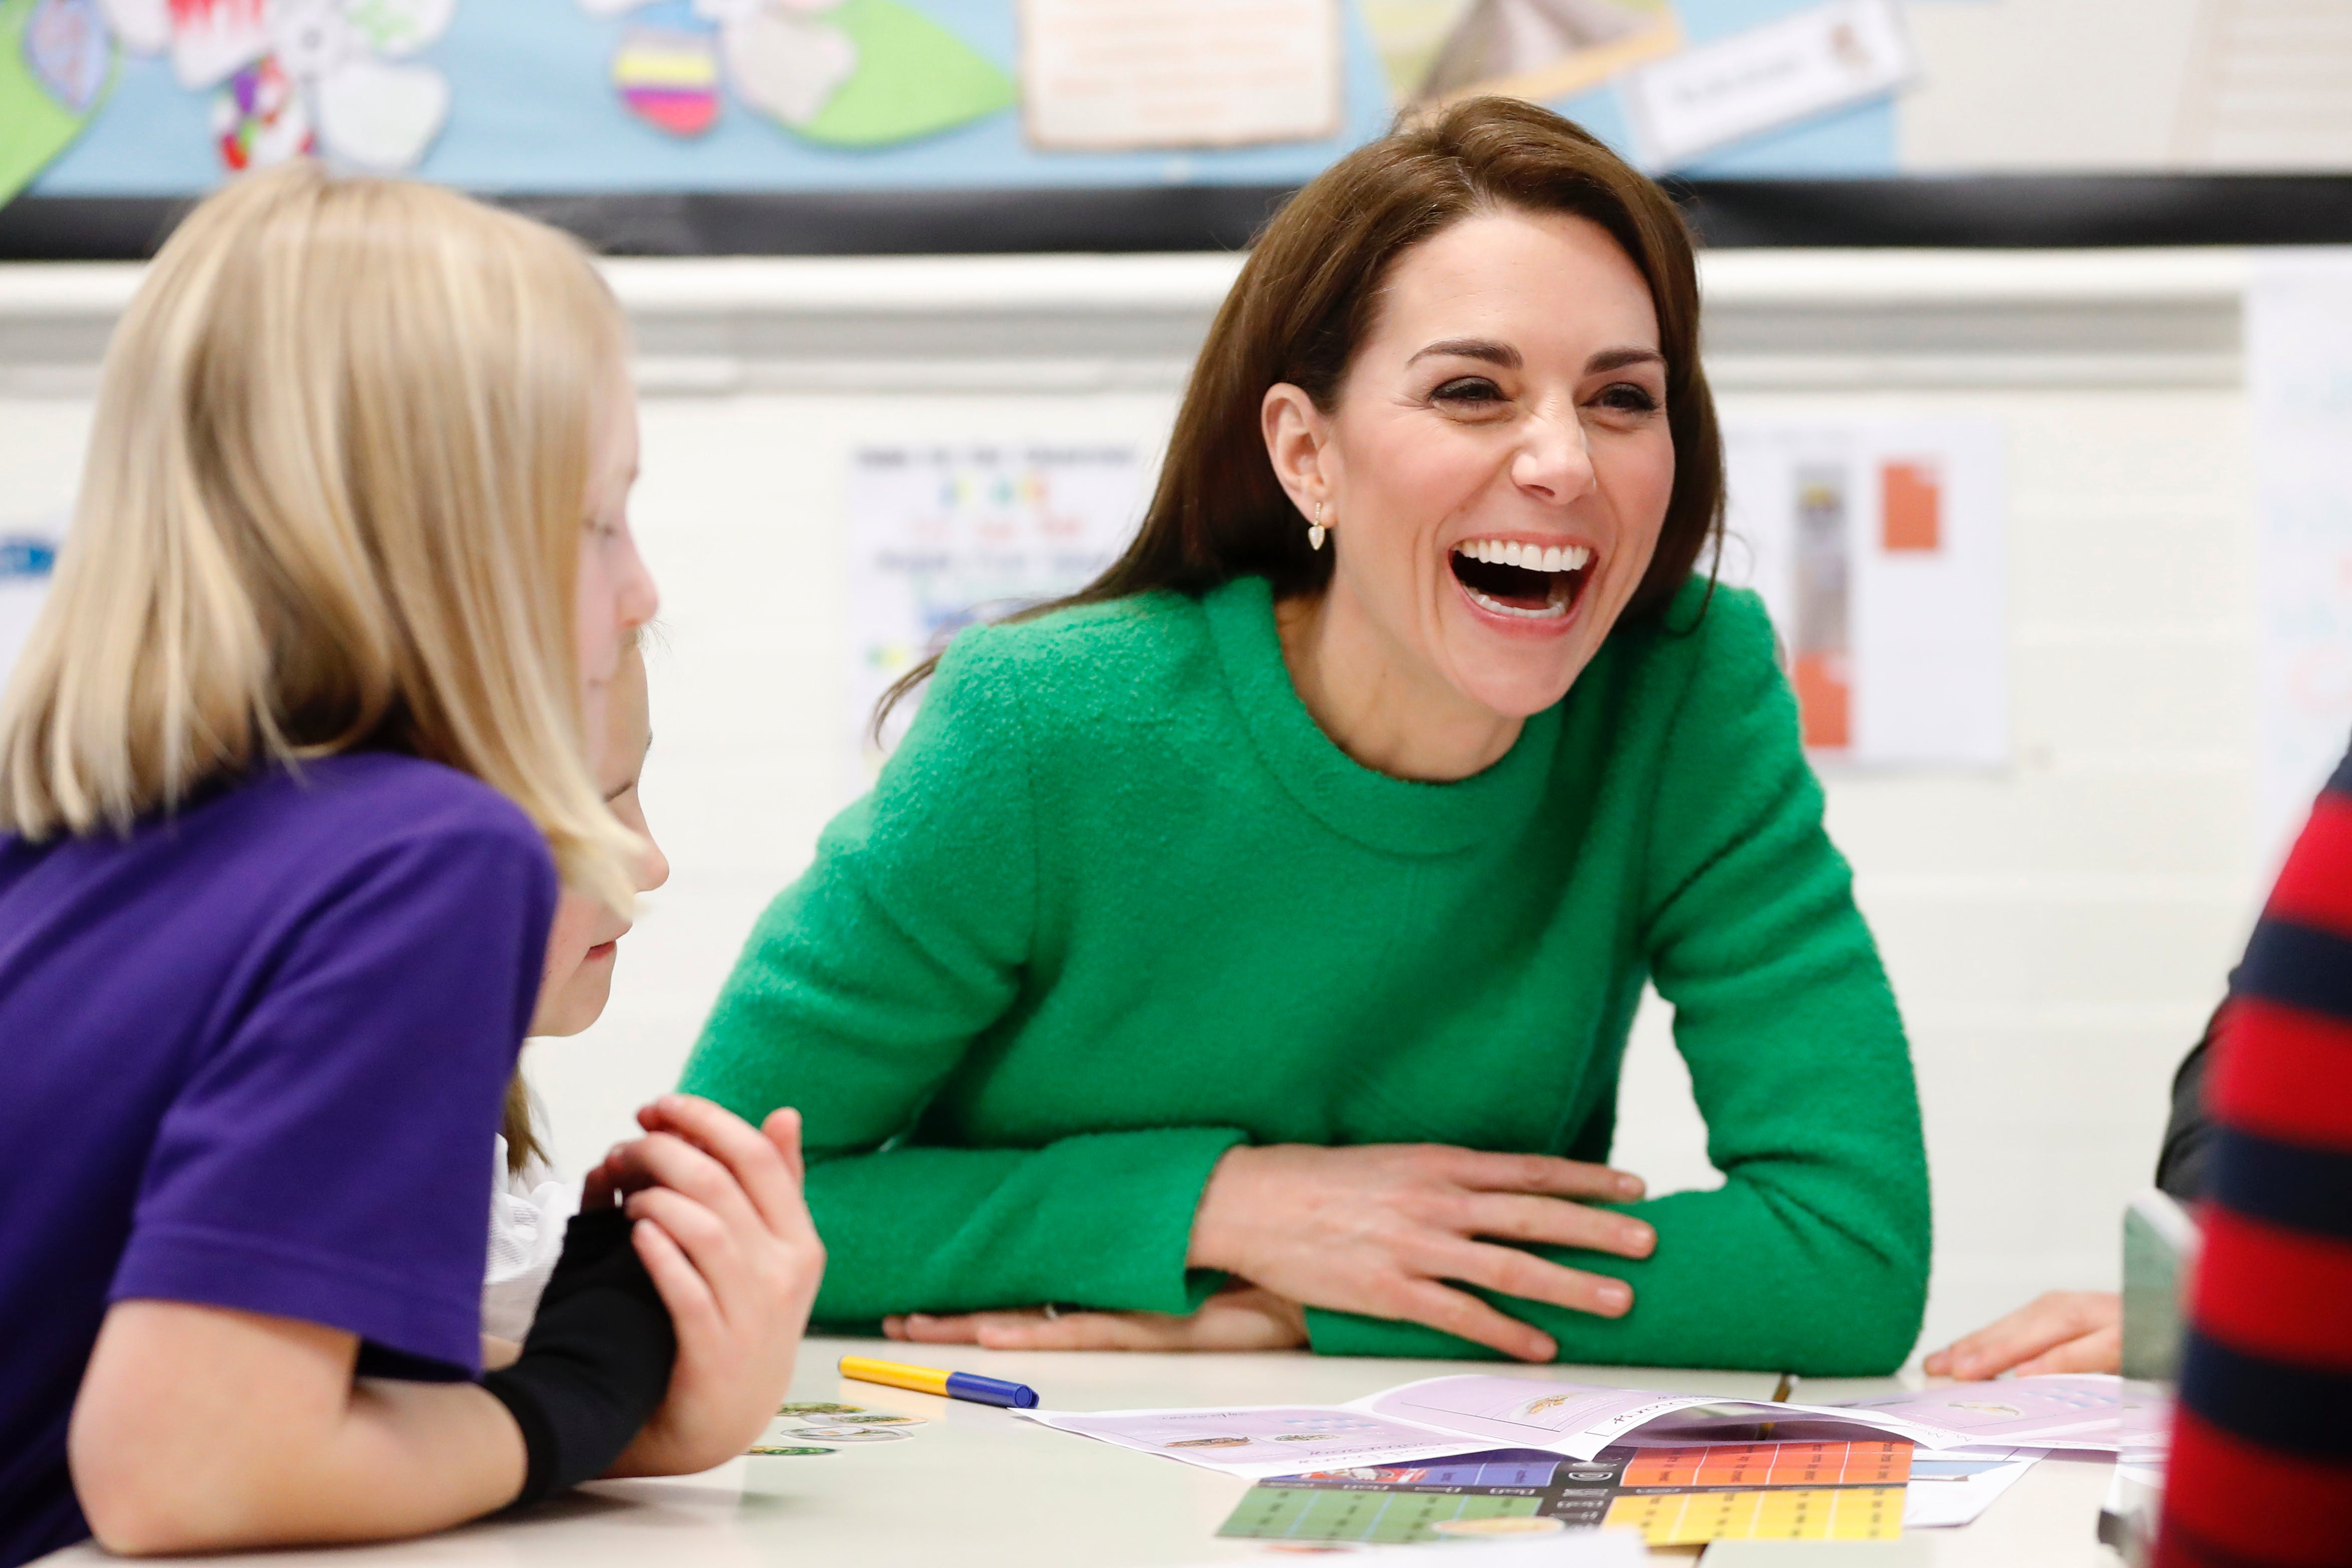 Today's Top Stories: Kate Middleton Gets a New Patronage, 'The Crown' Premiere Date Leaks & More...